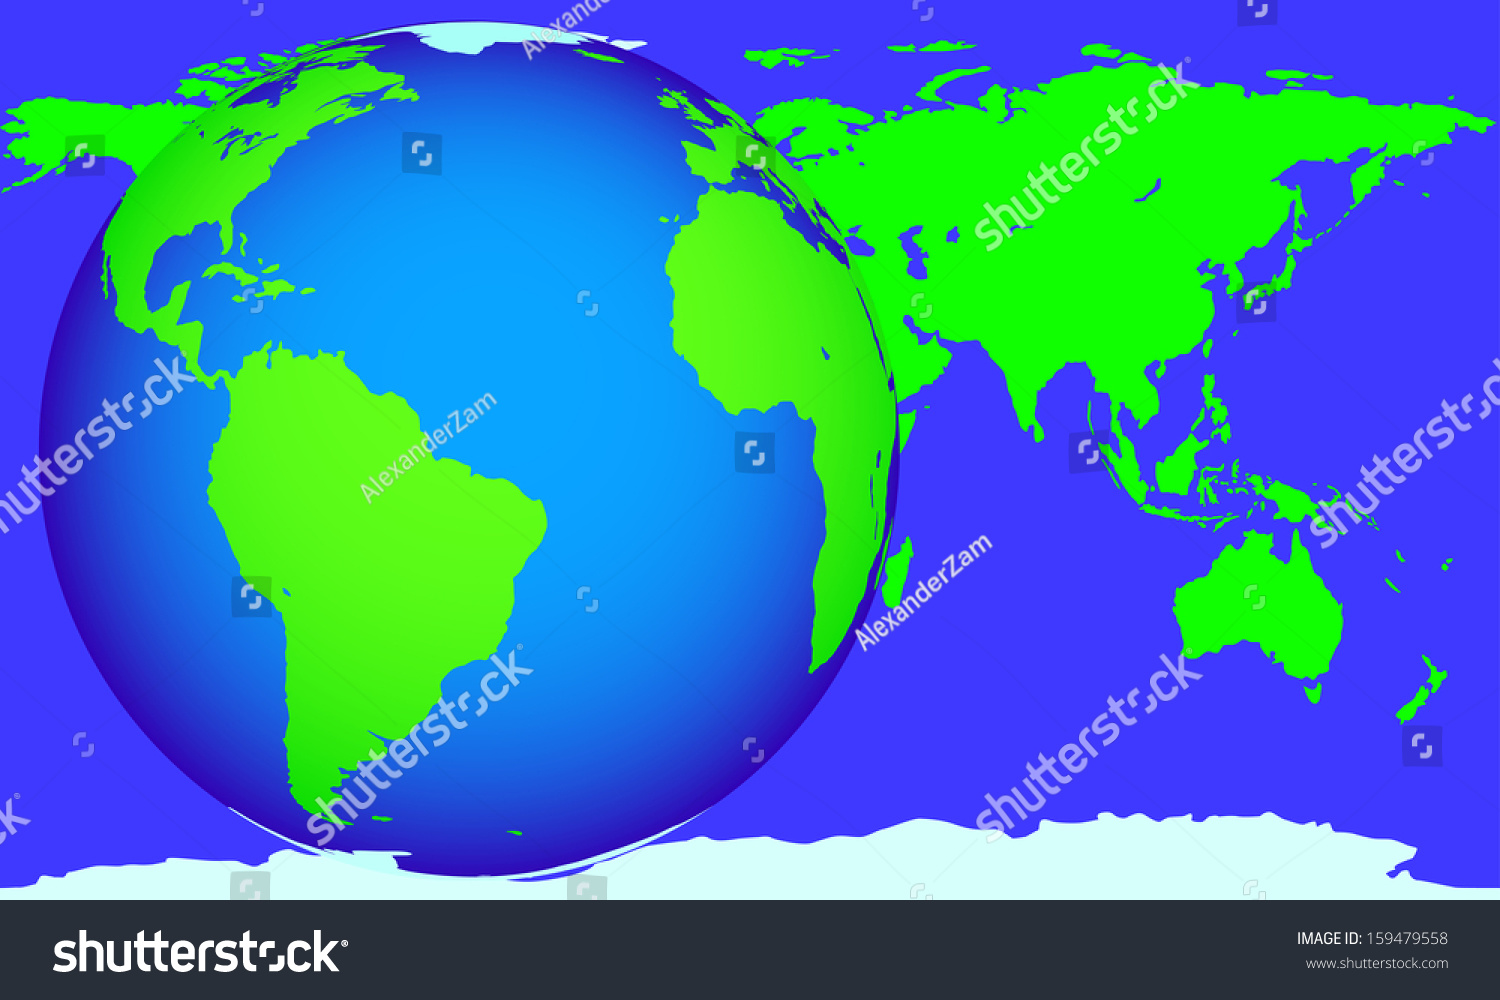 Globe World Map Located On Different Stock Vector (Royalty ... on different world flags, different countries of the world, different boxes, different governments of the world, different mountains, types of maps, different flowers, thematic map, mappa mundi, different map projections, topographic map,